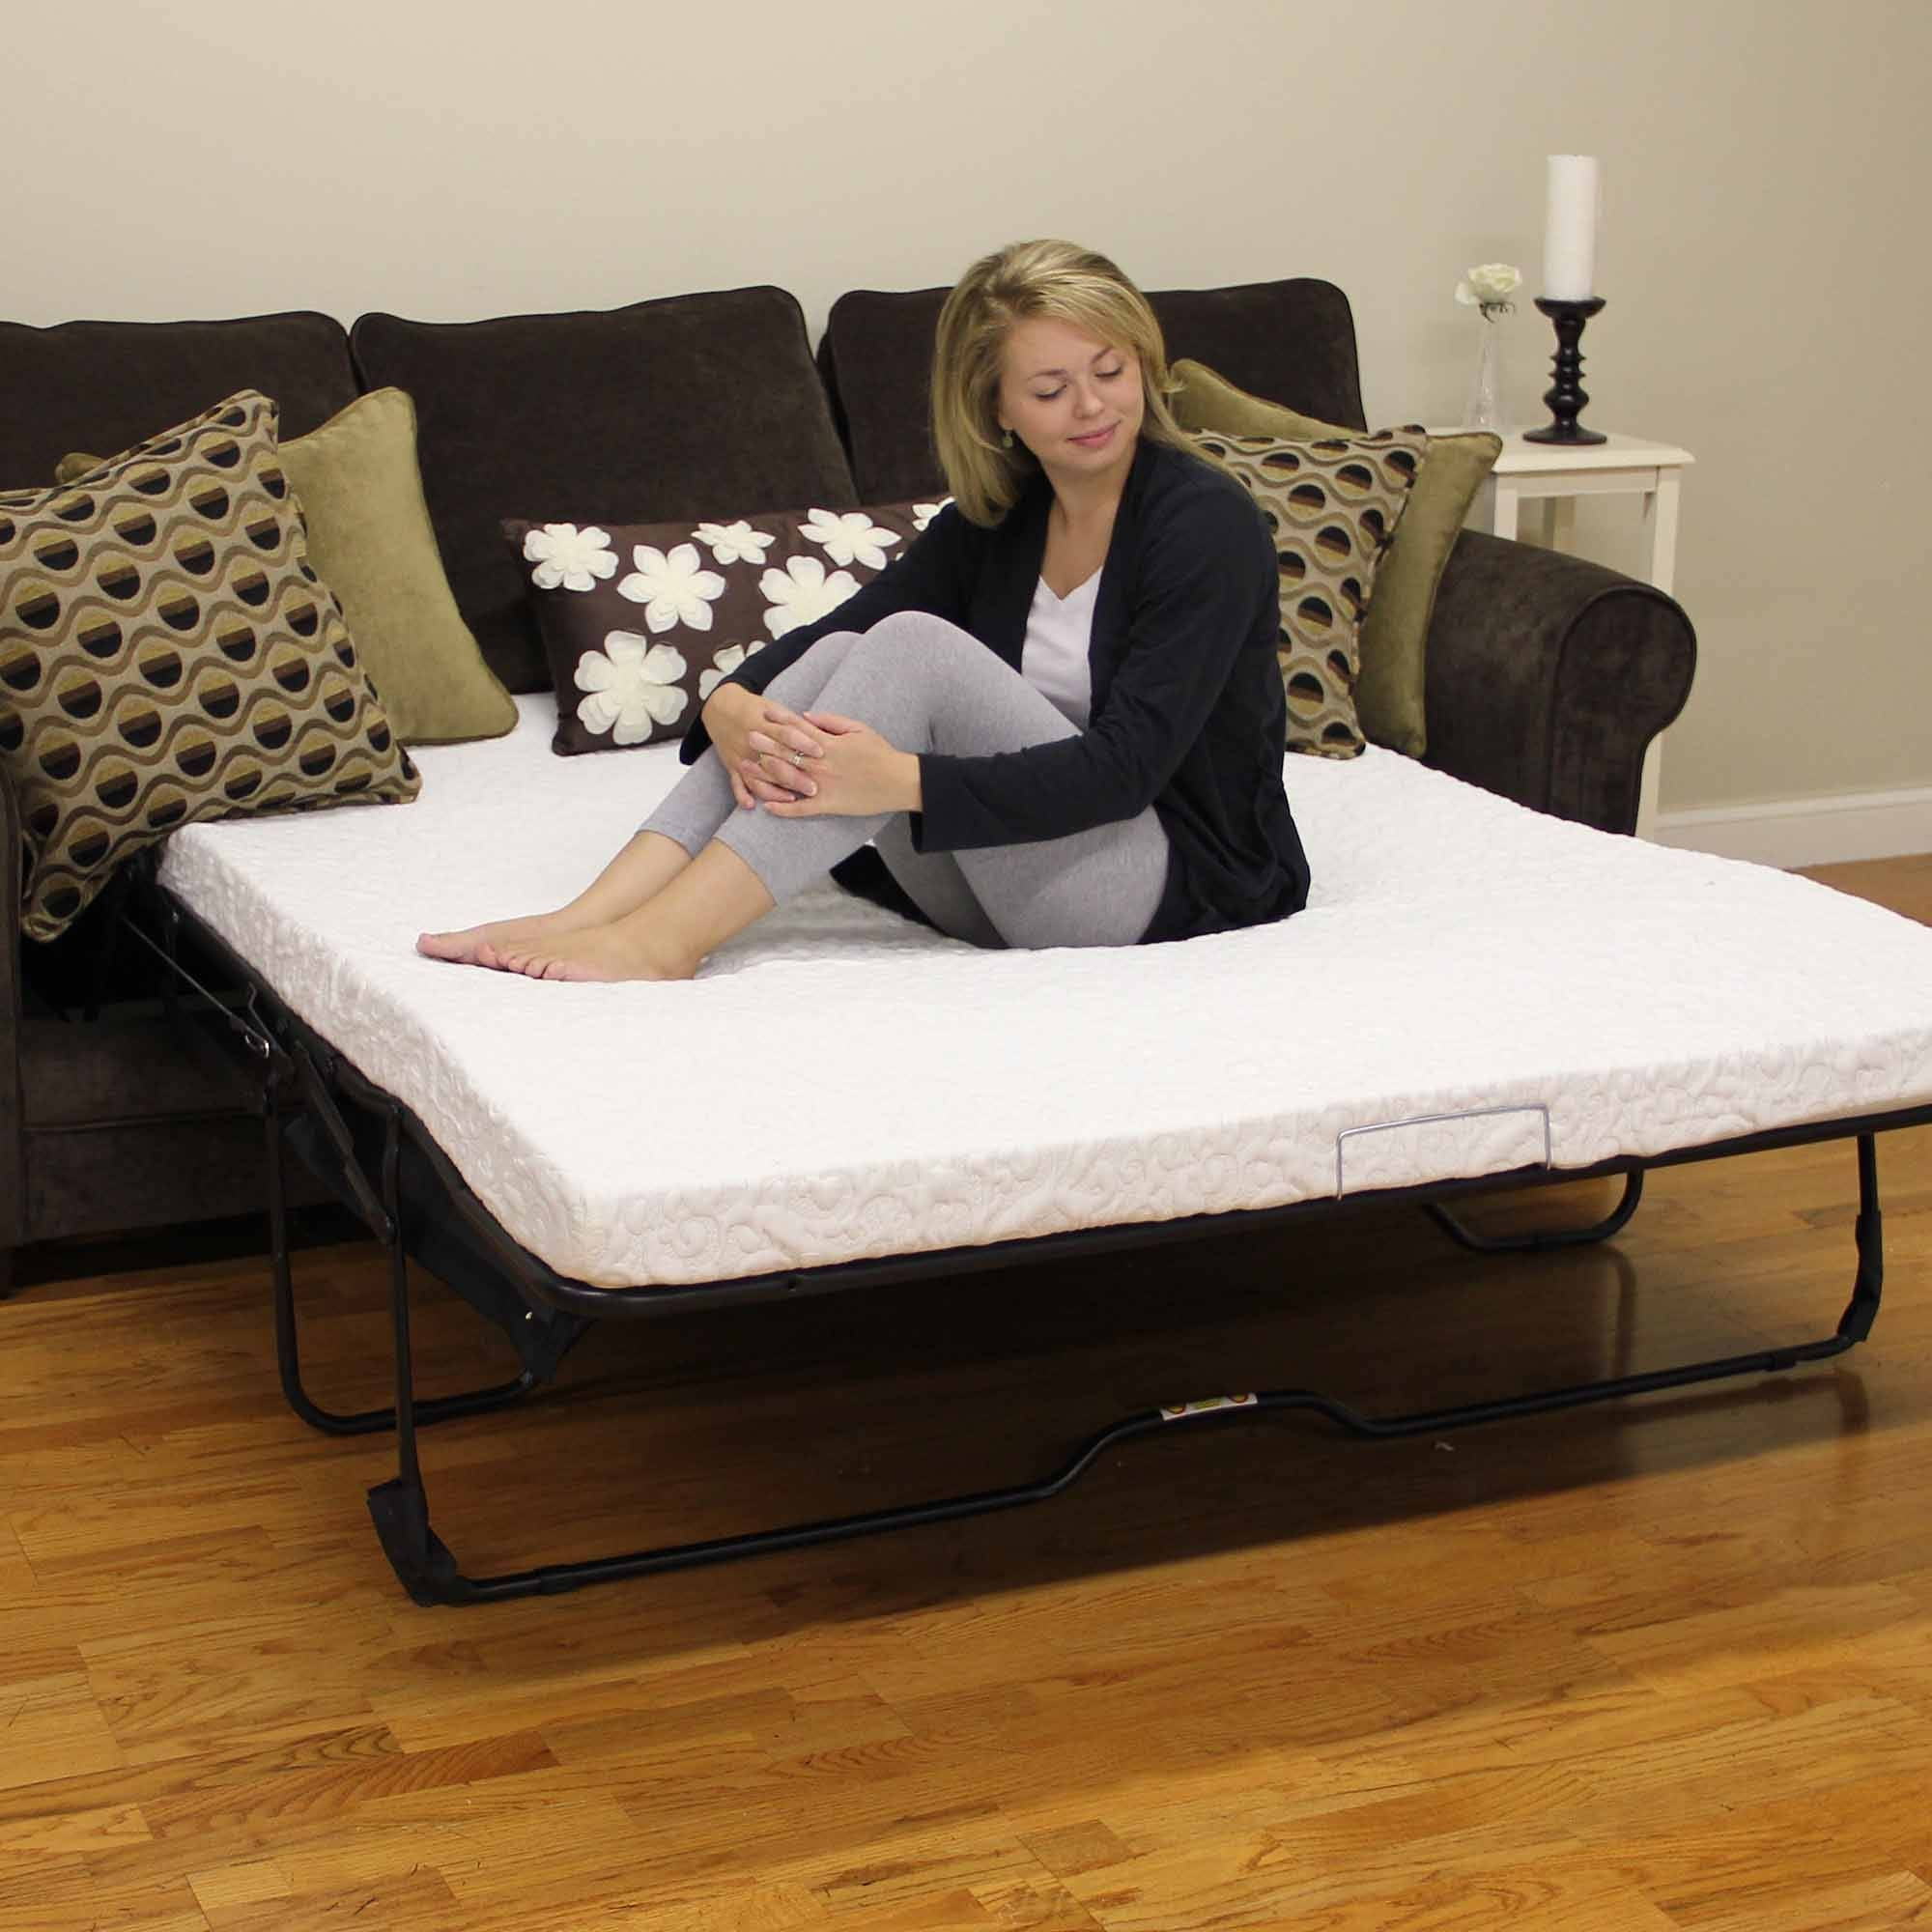 Mattress Pad For Sofa Bed And Sleeper Sofa Mattresses Replacement With Sleeper Sofas Mattress Covers (View 2 of 15)